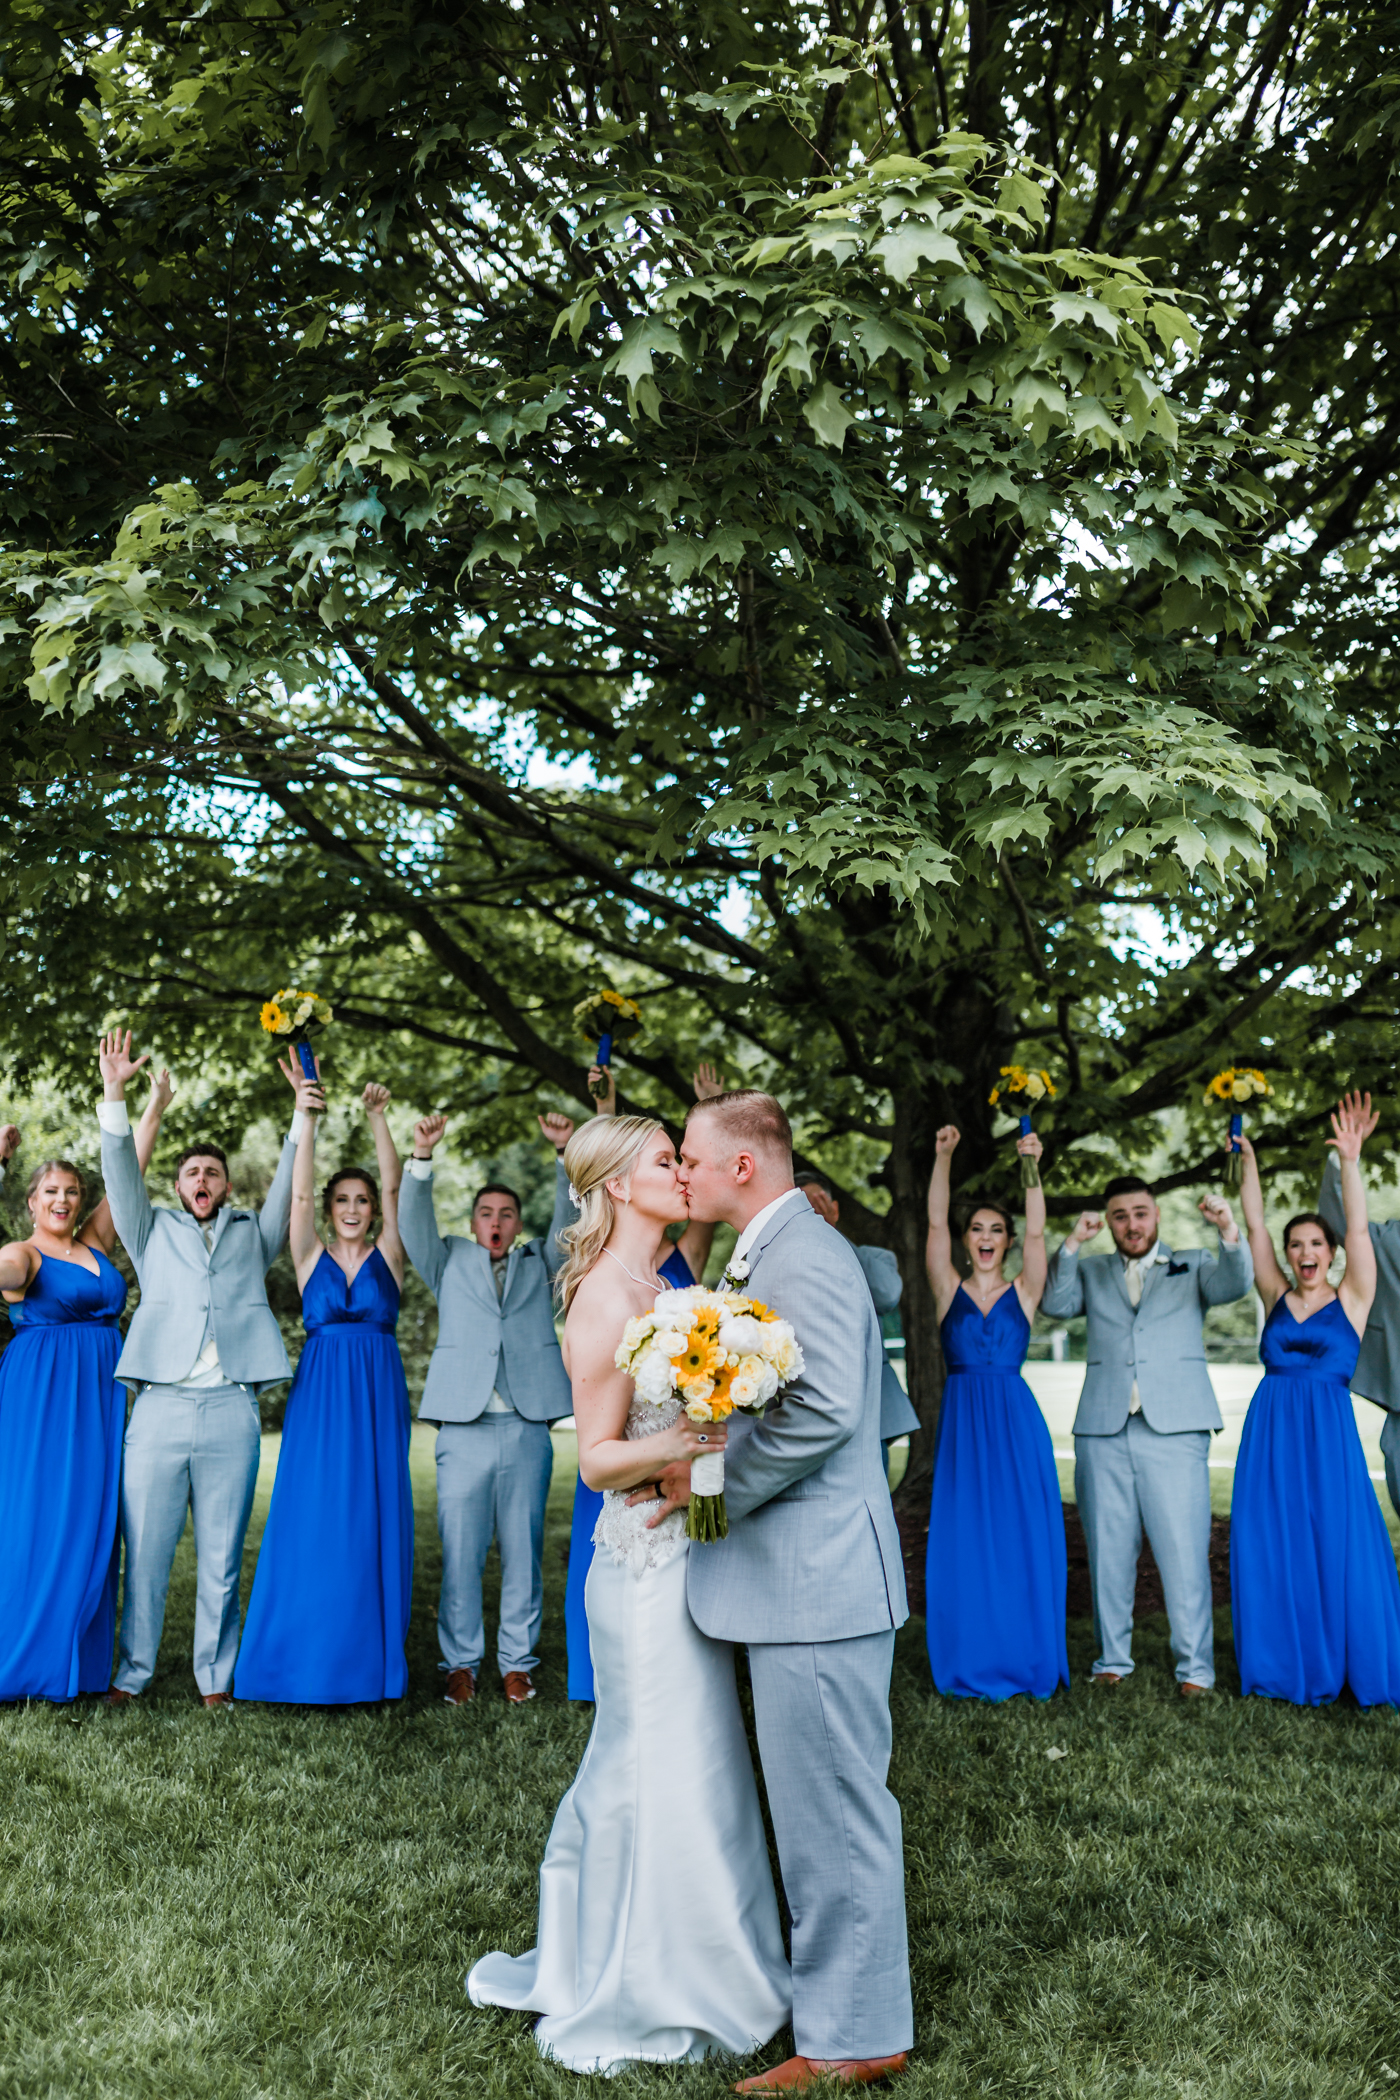 bride and groom kiss in front of cheering wedding party - top husband and wife photography team